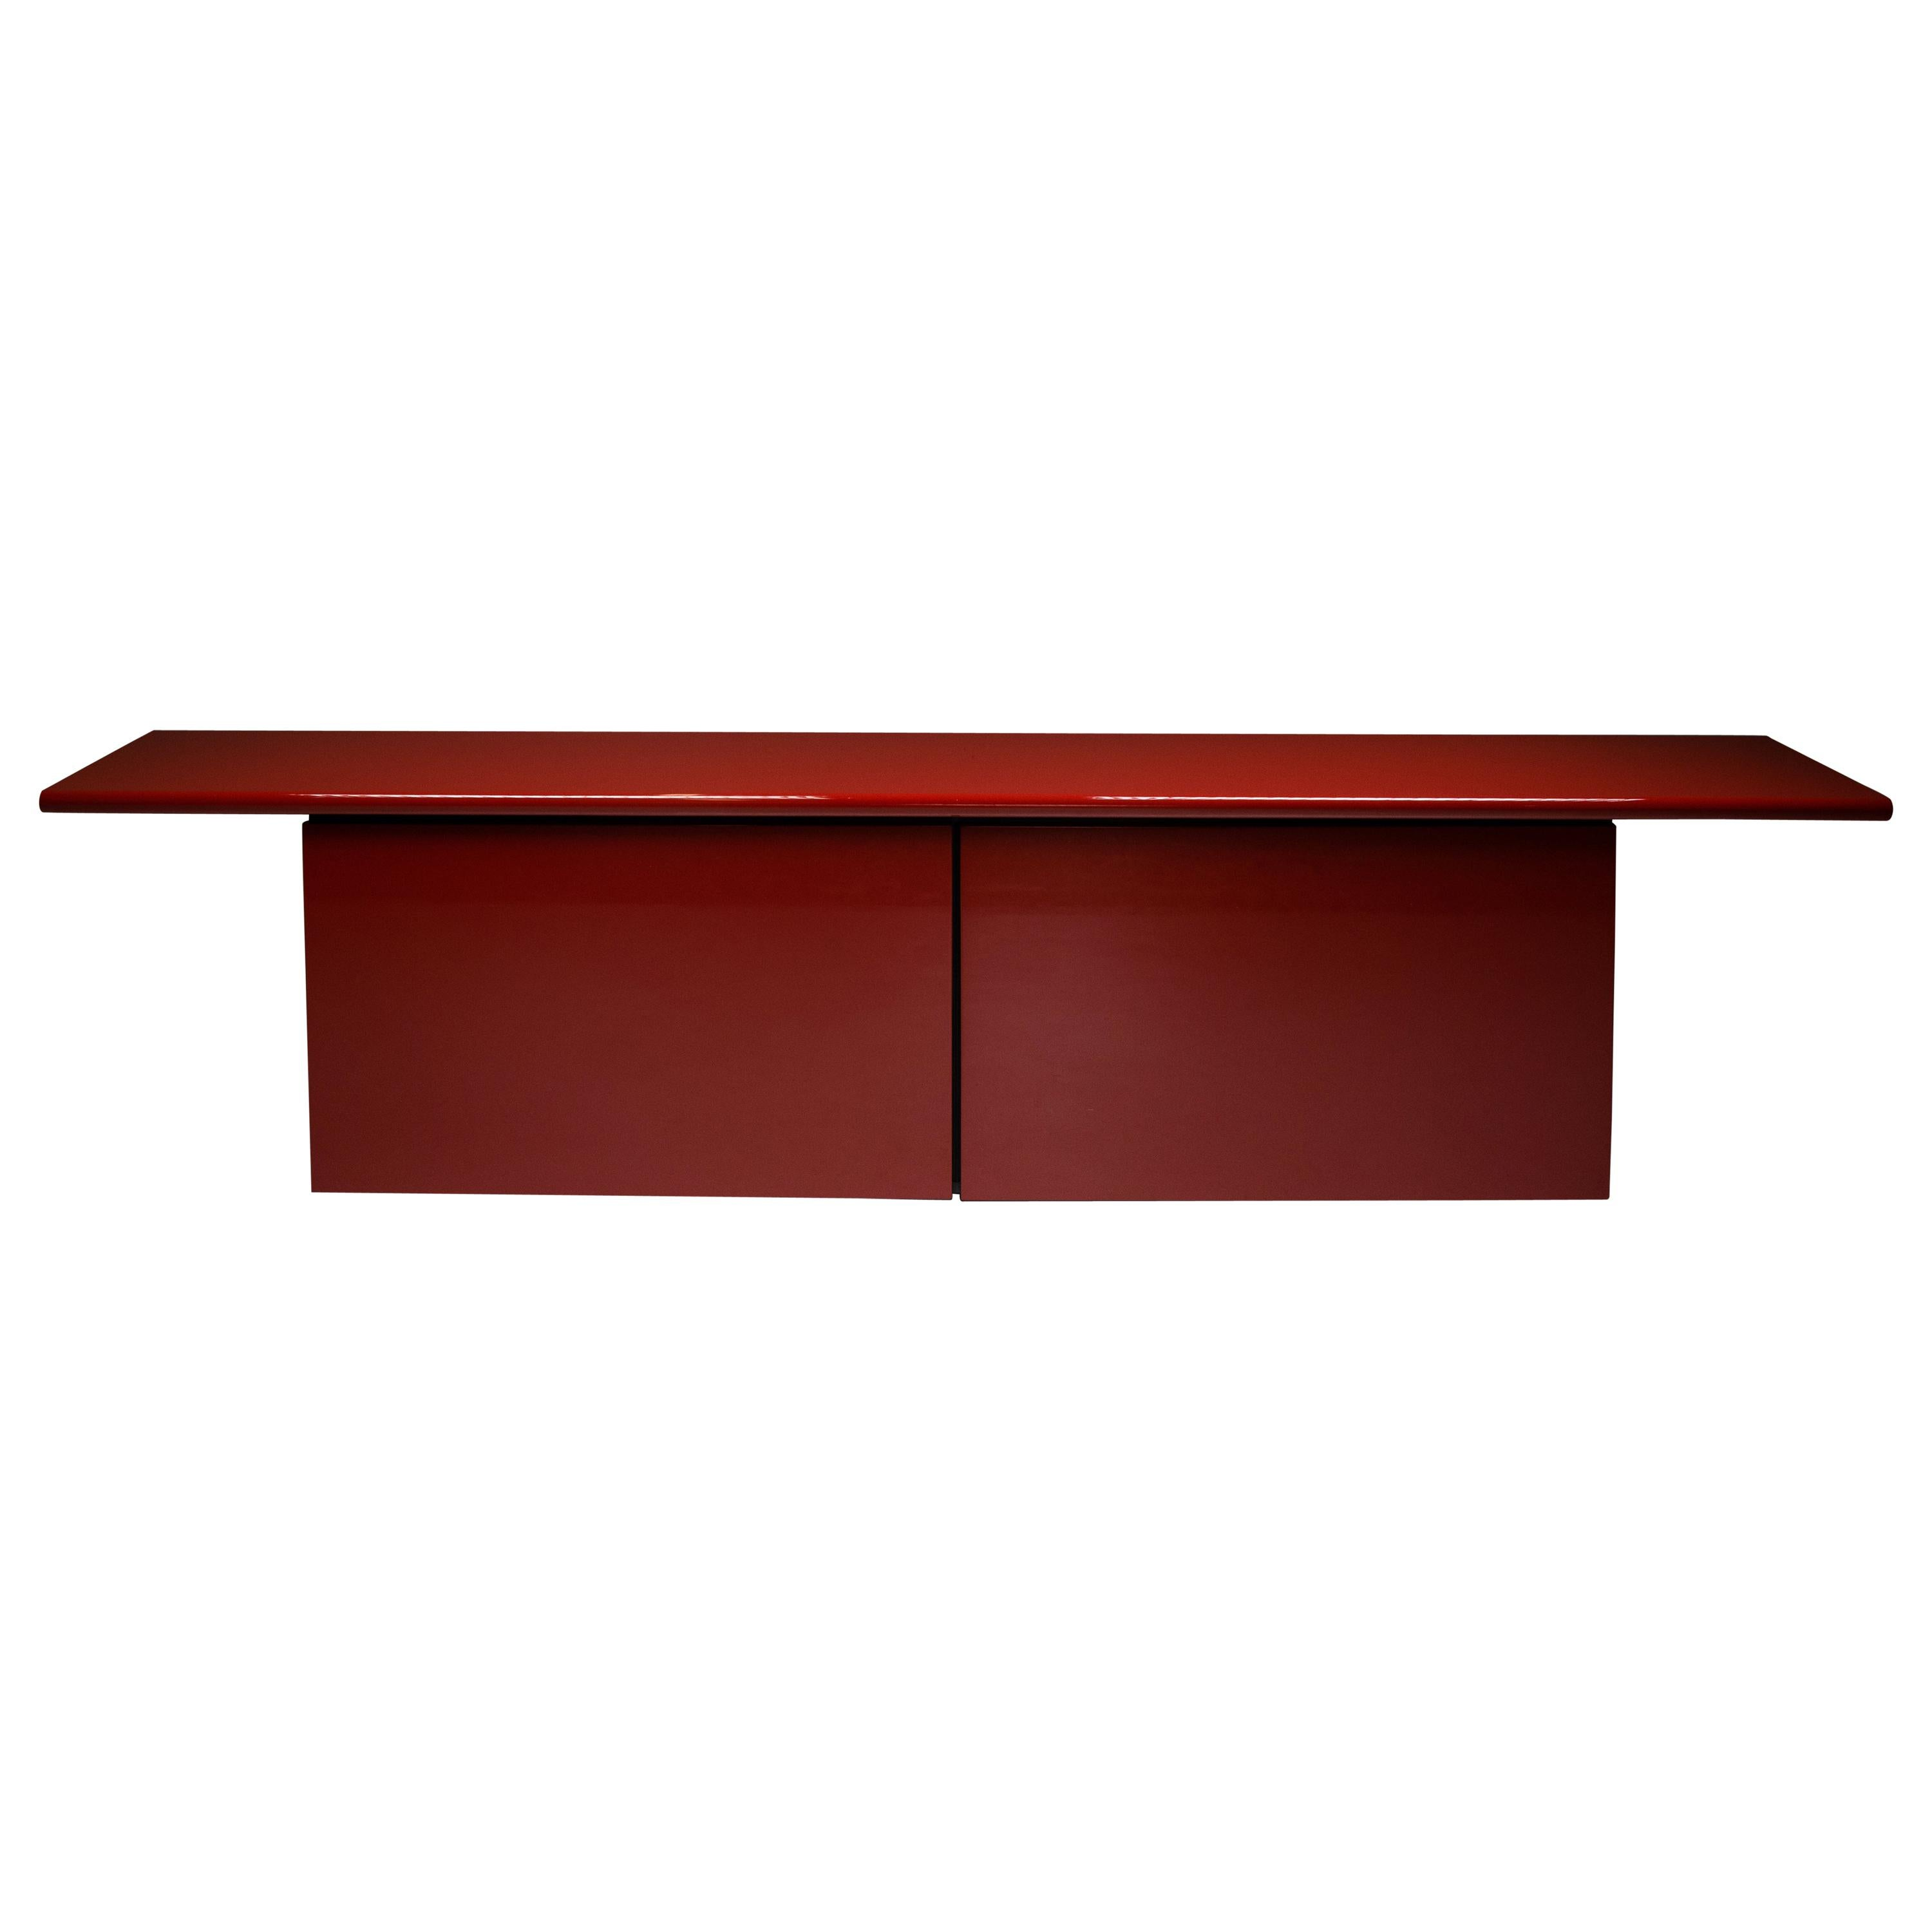 Red Lacquer Credenza by Giotto Stoppino for Acerbis